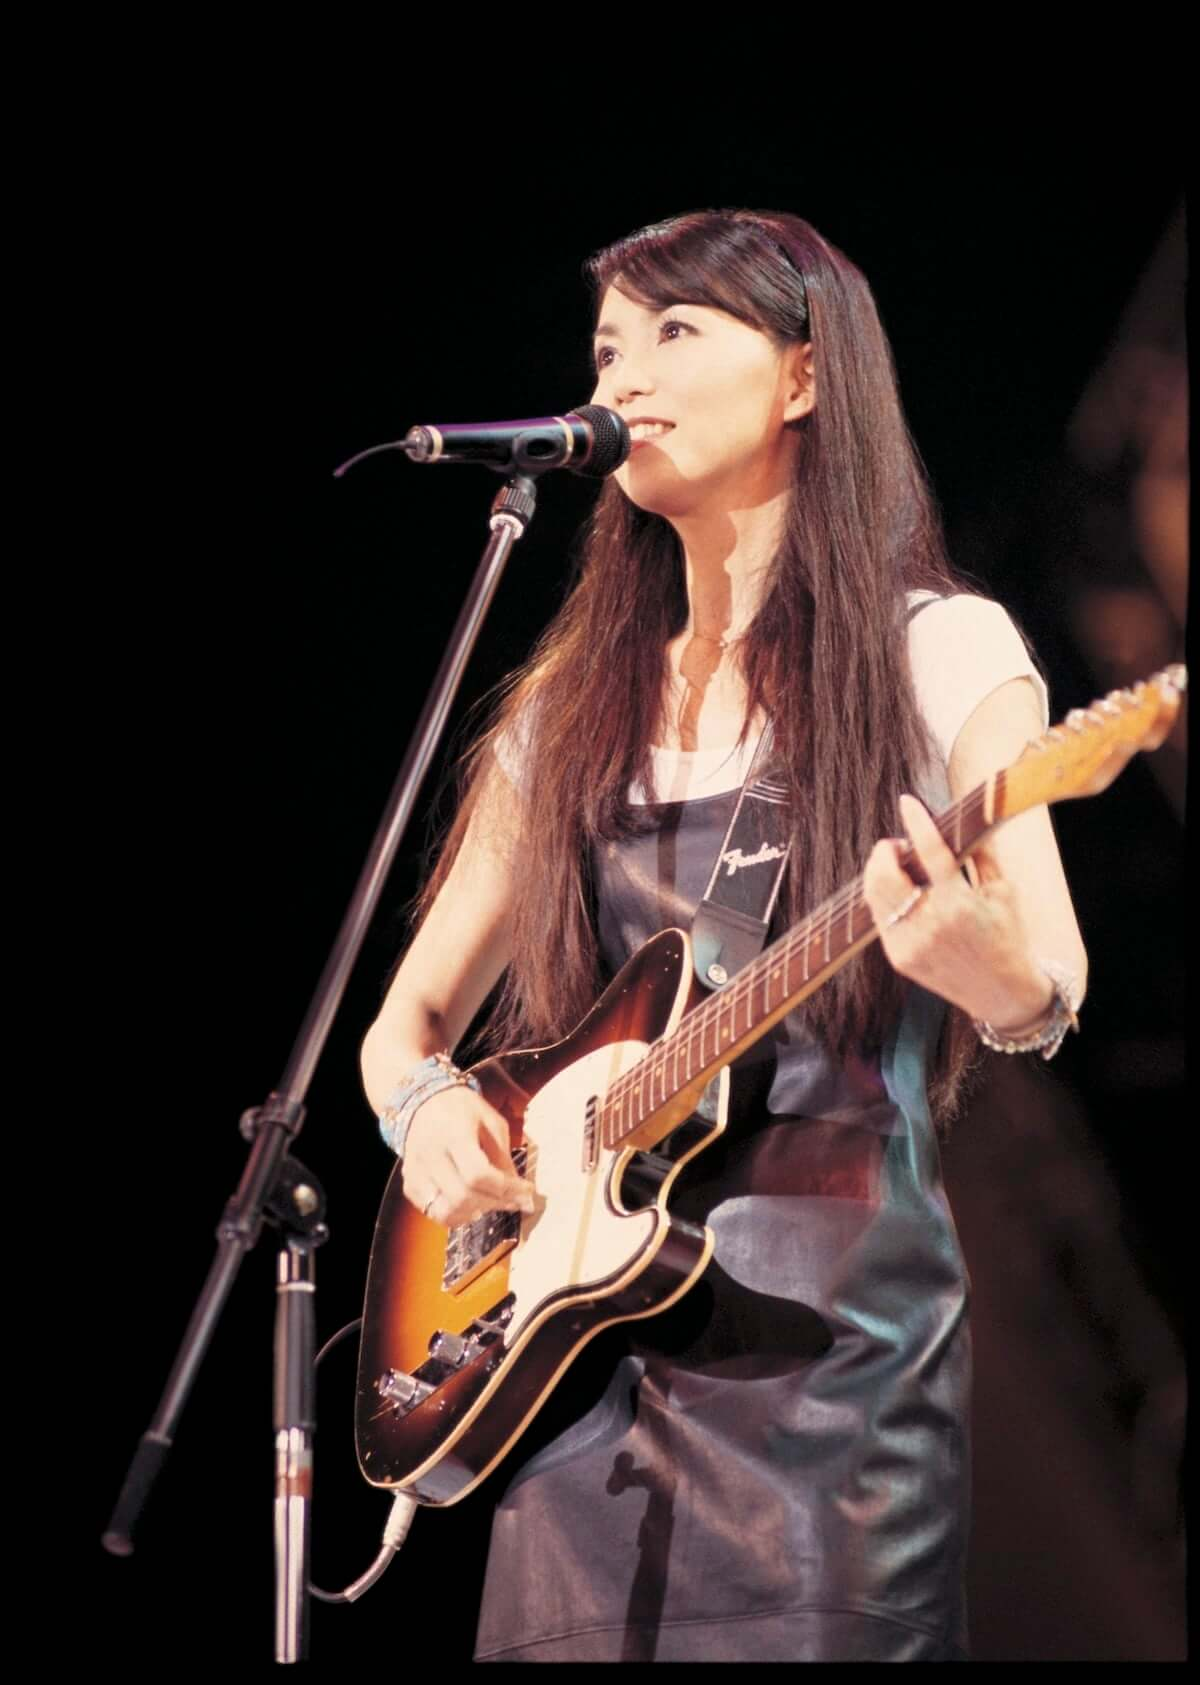 竹内まりやライブドキュメンタリー映画『souvenir the movie ~MARIYA TAKEUCHI Theater Live~』再上映決定! music190422_takeuchimariya_main-1200x1685